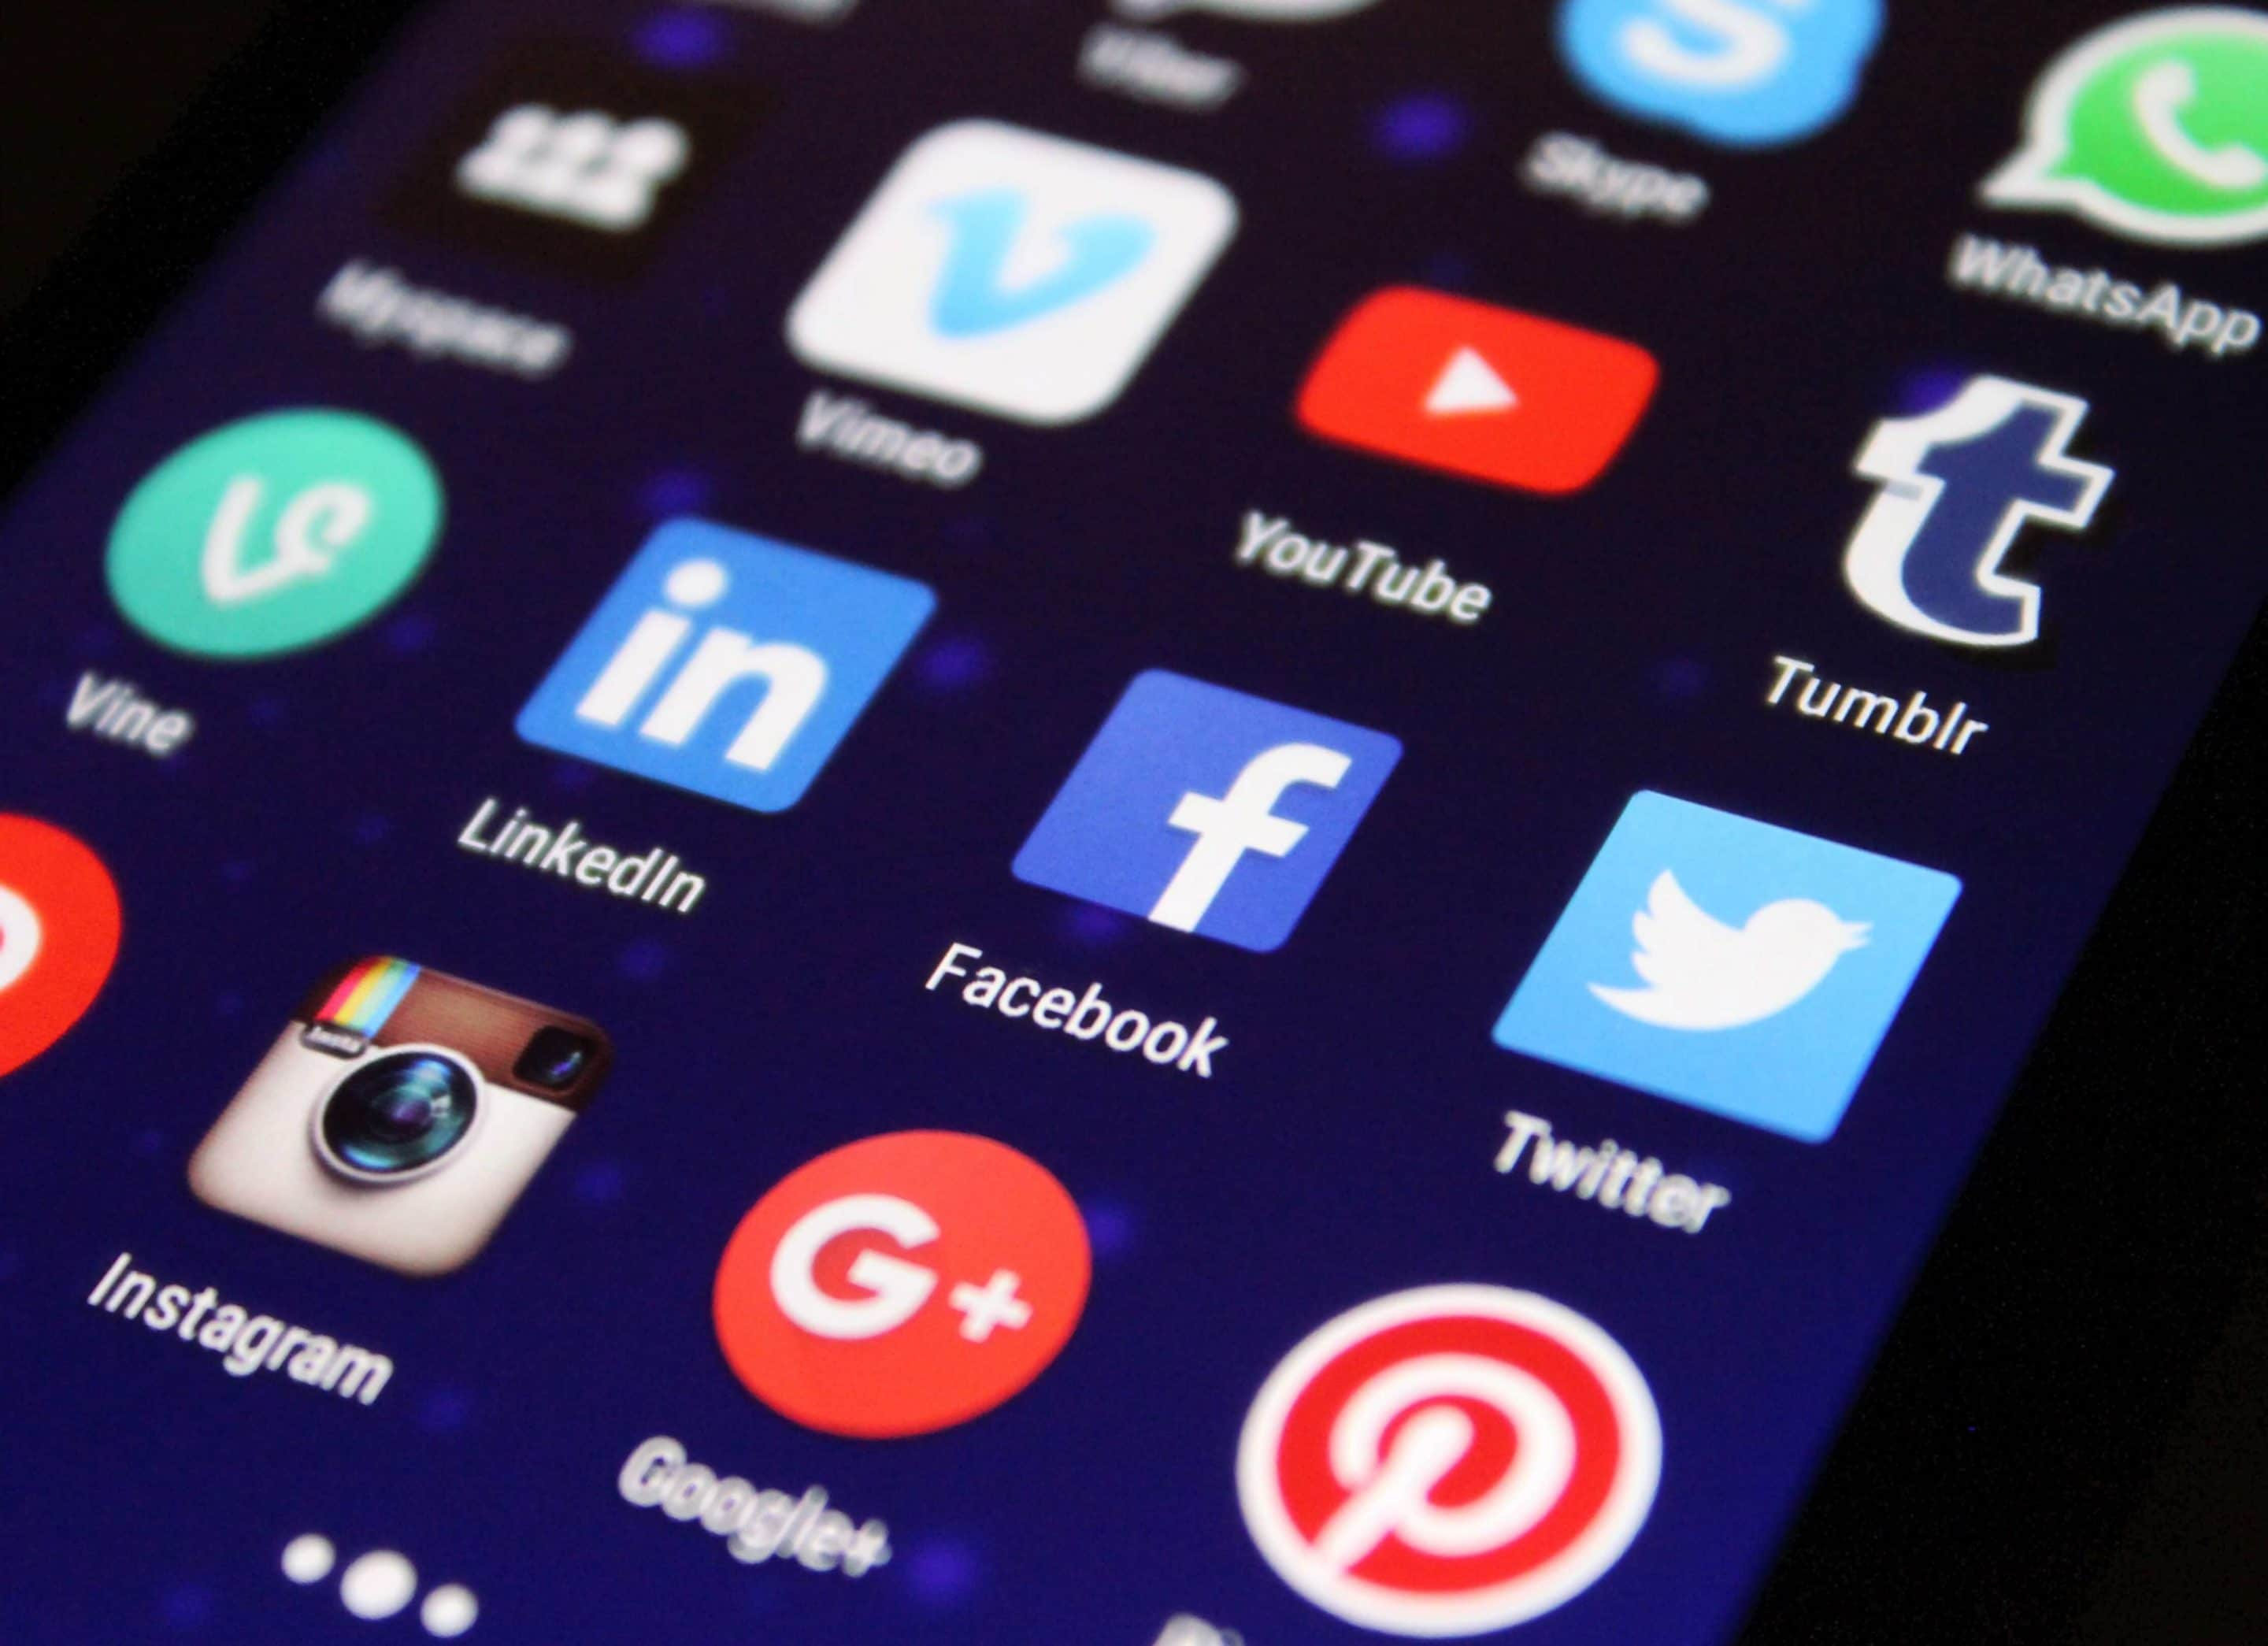 Keep your audience engaged through the help of your social media platforms.